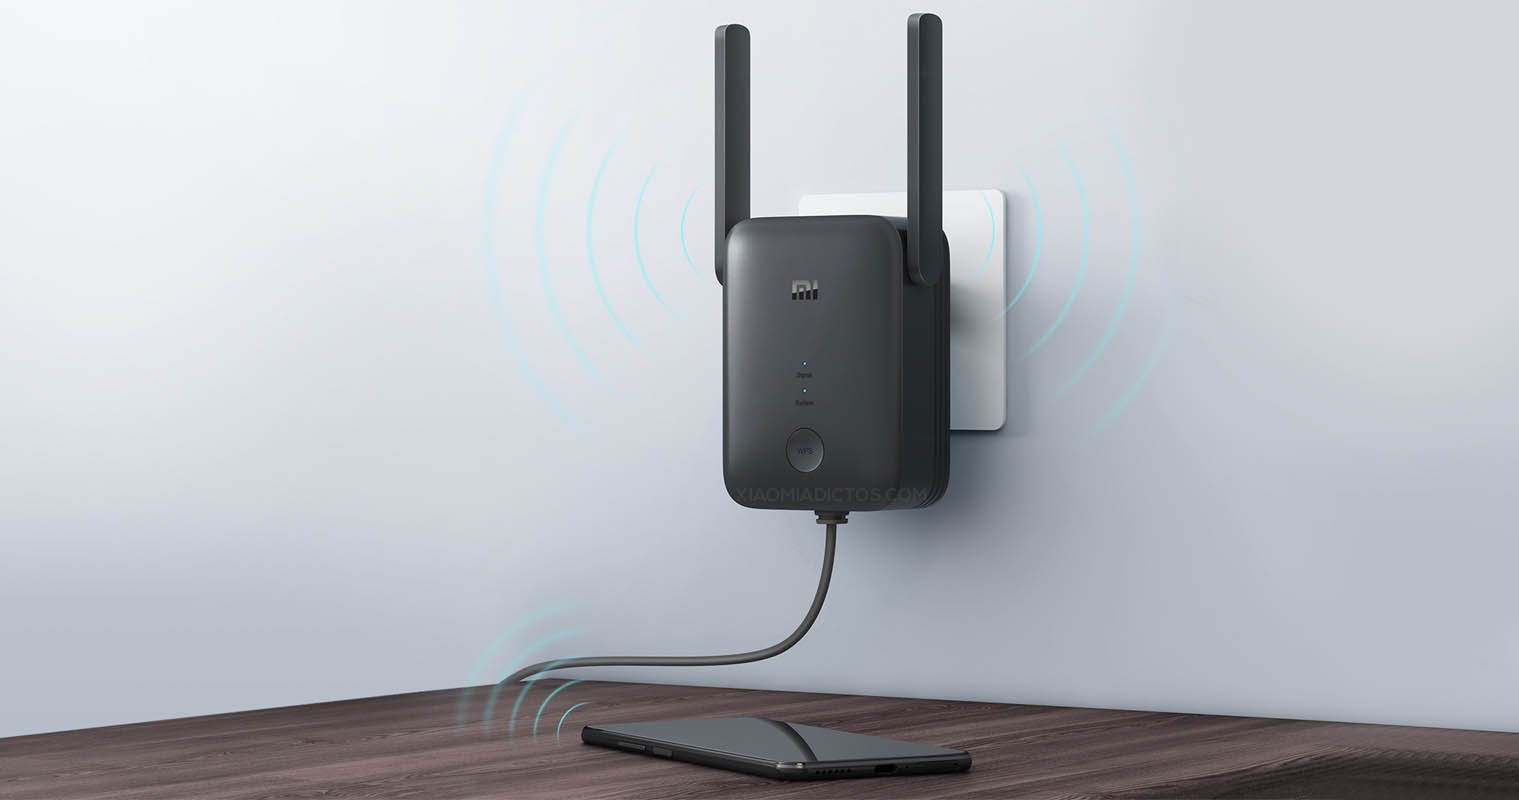 Xiaomi launches the Mi WiFi Range Extender AC1200, a new WiFi repeater with Ethernet port